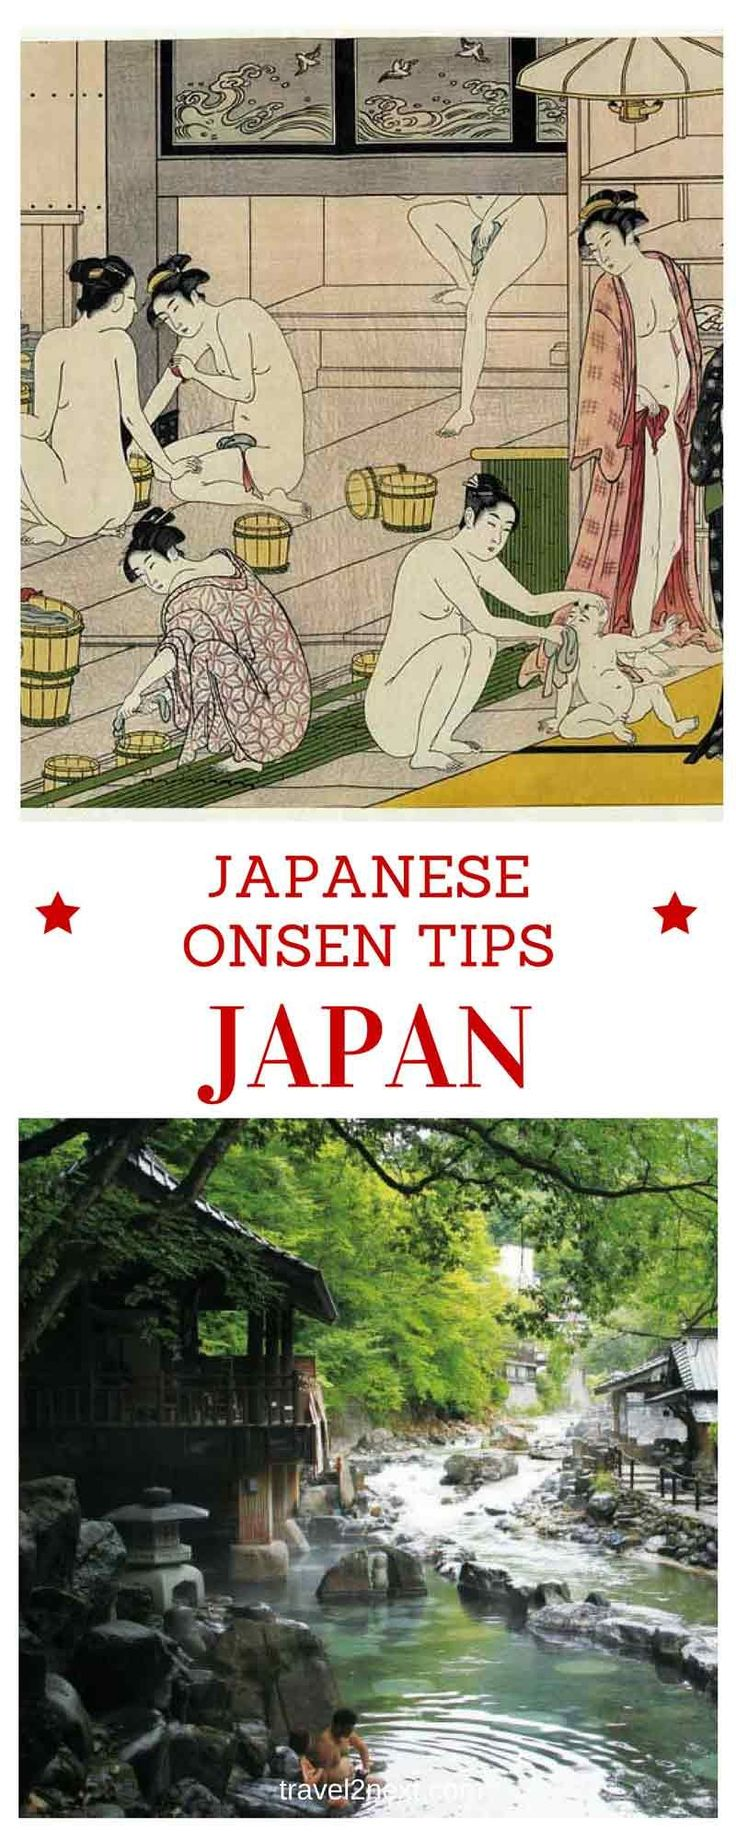 Japanese Onsen Tips for A Japanese Public Bath Experience. One of the best things to do while in Japan is to visit an onsen.